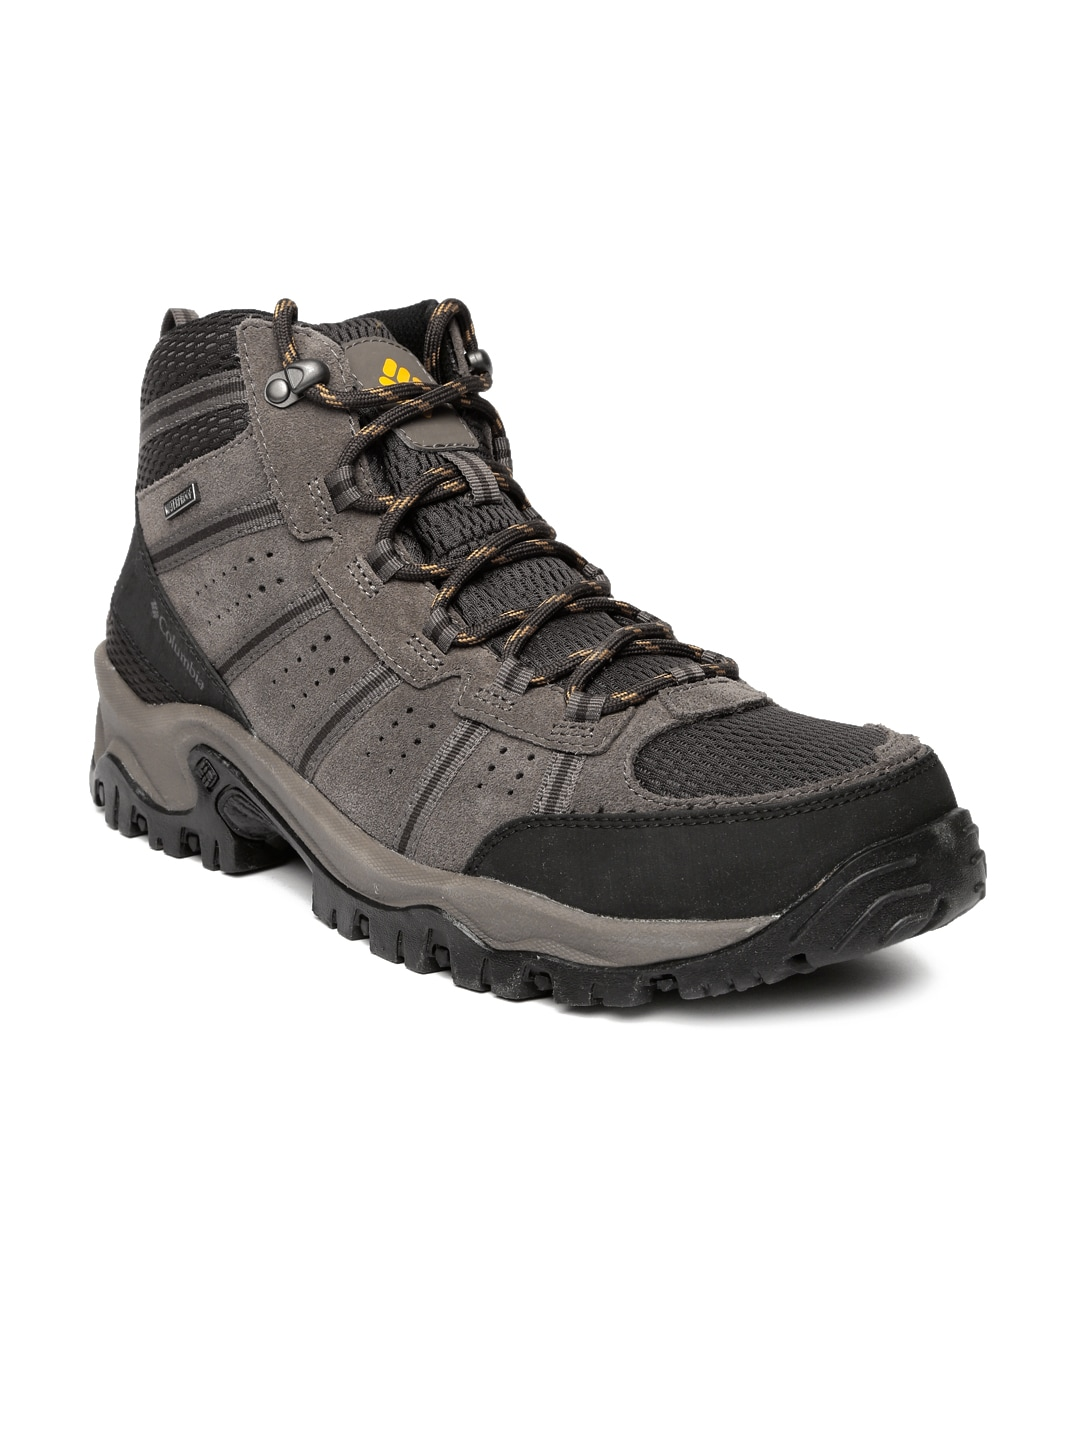 149219b7ae7 Hike Shoes - Buy Hike Shoes Online in India